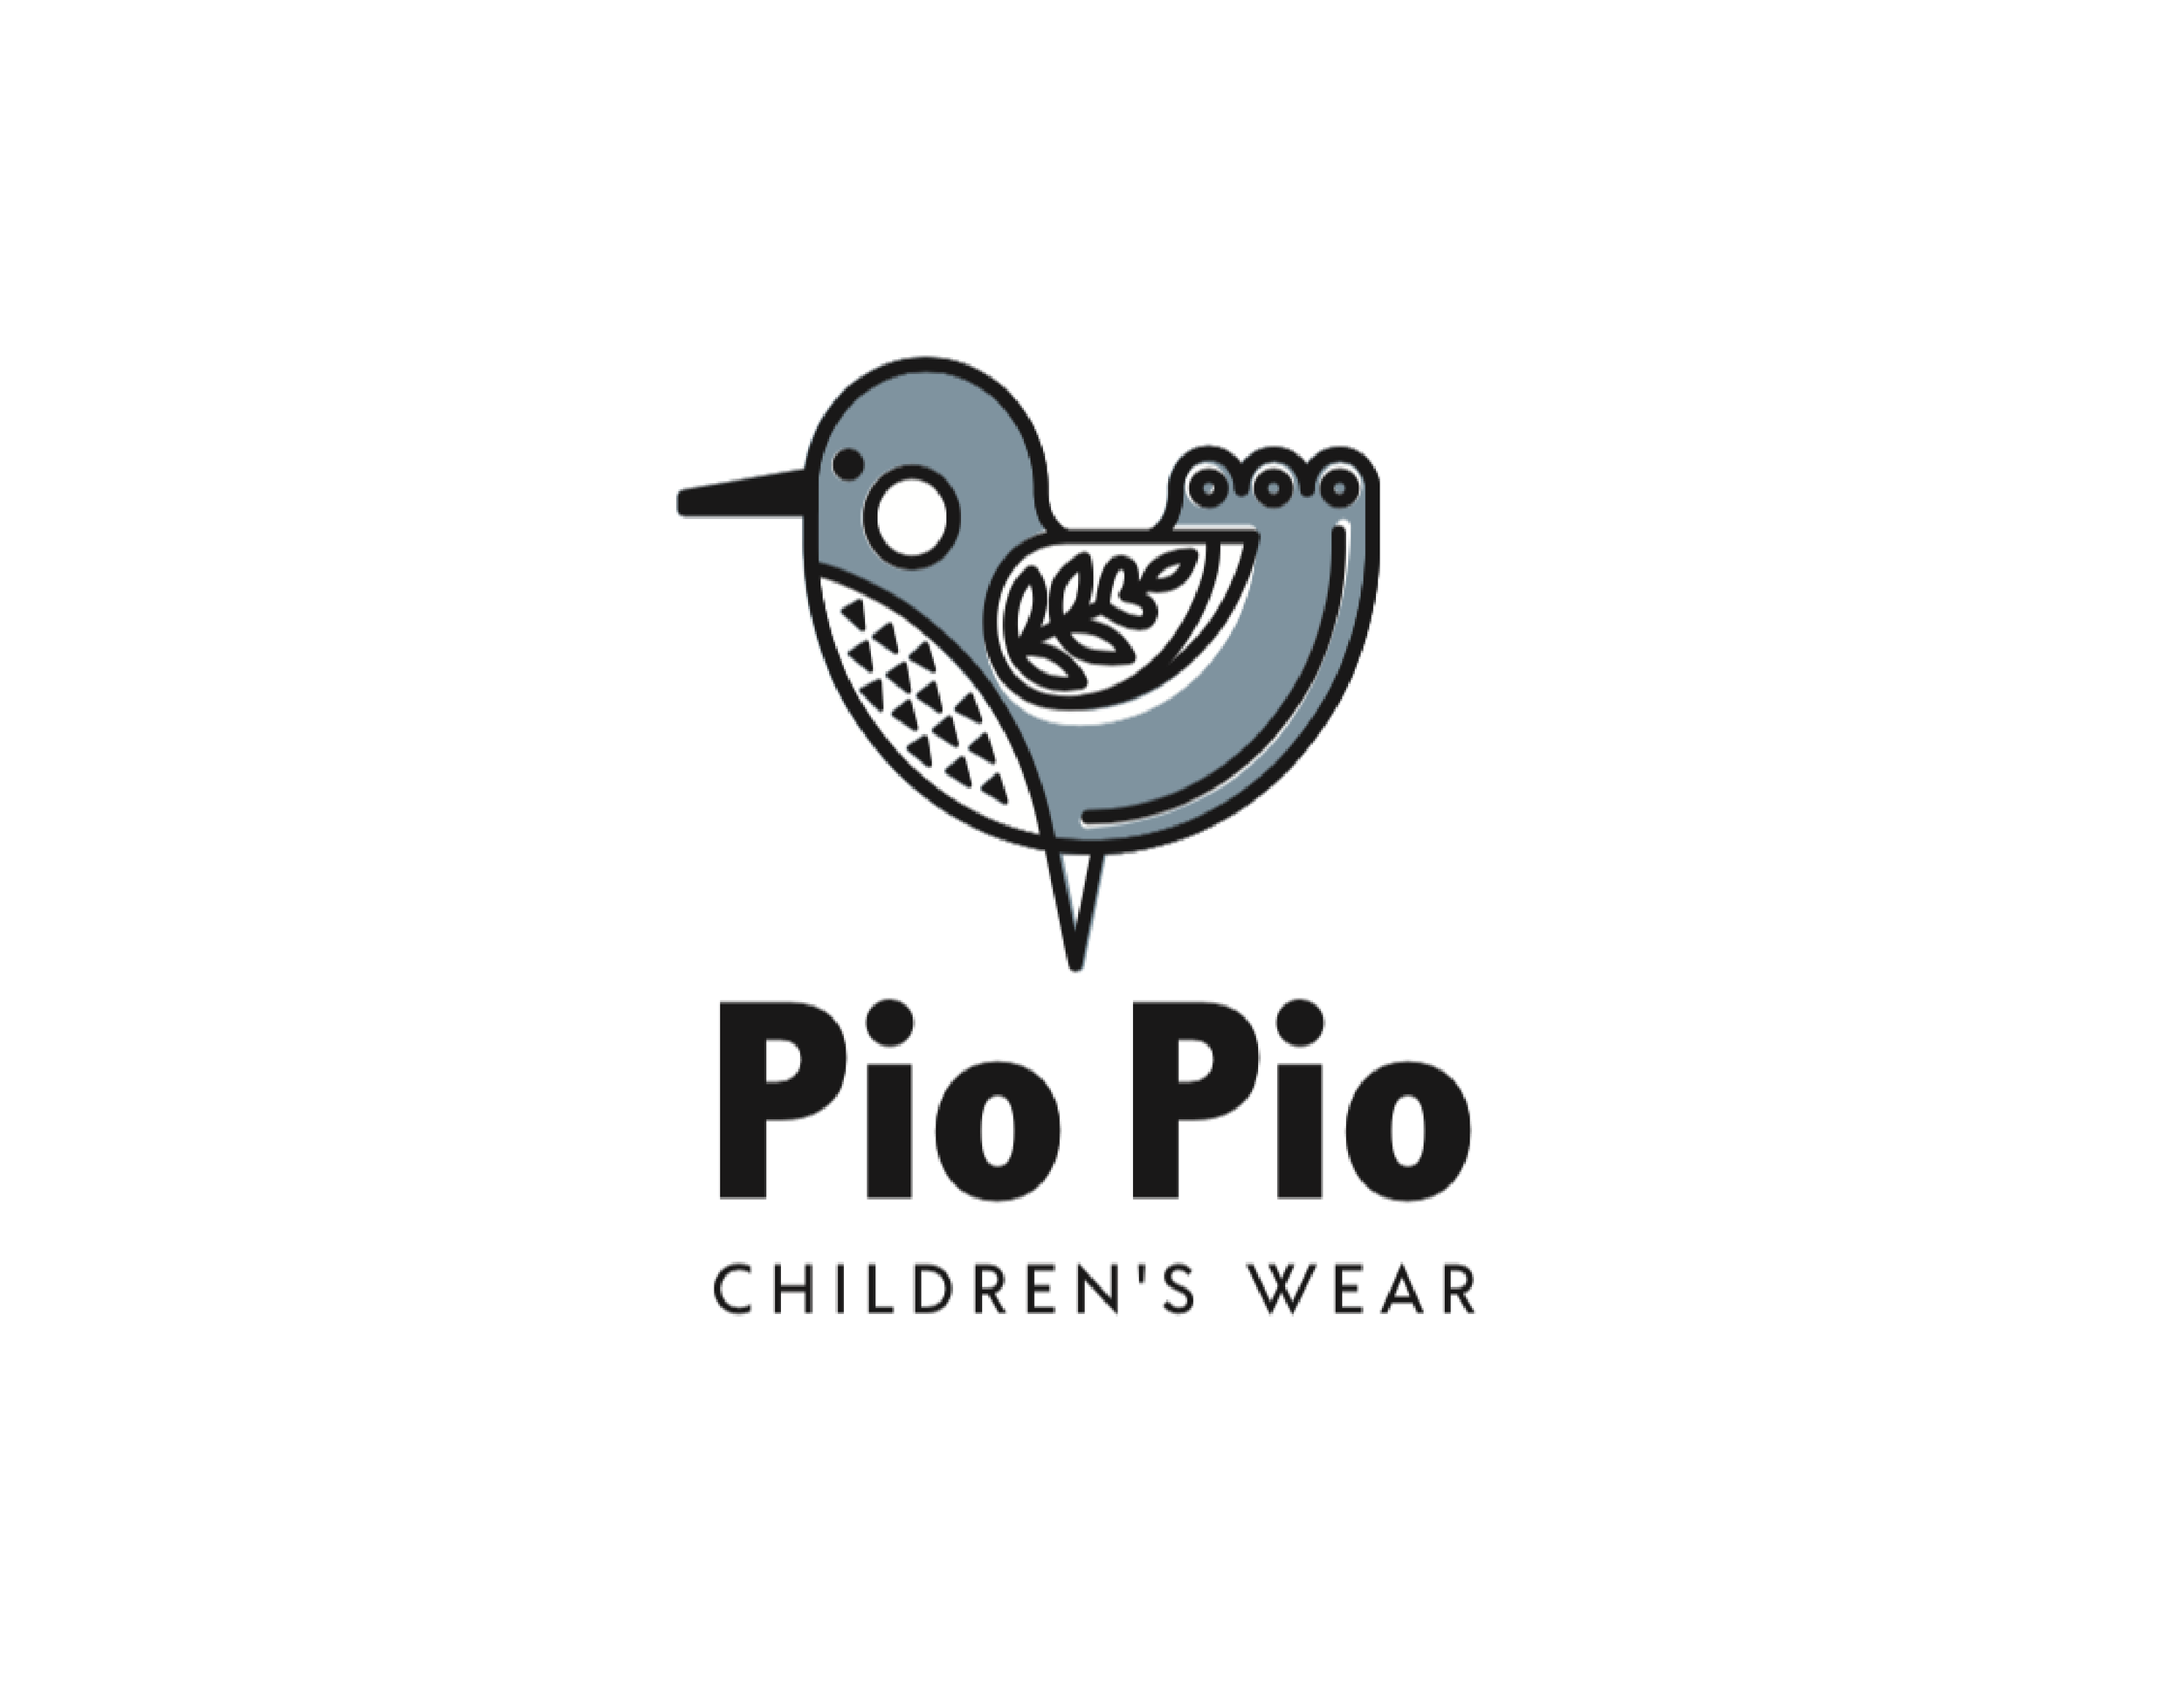 Pio Pio Children's Wear